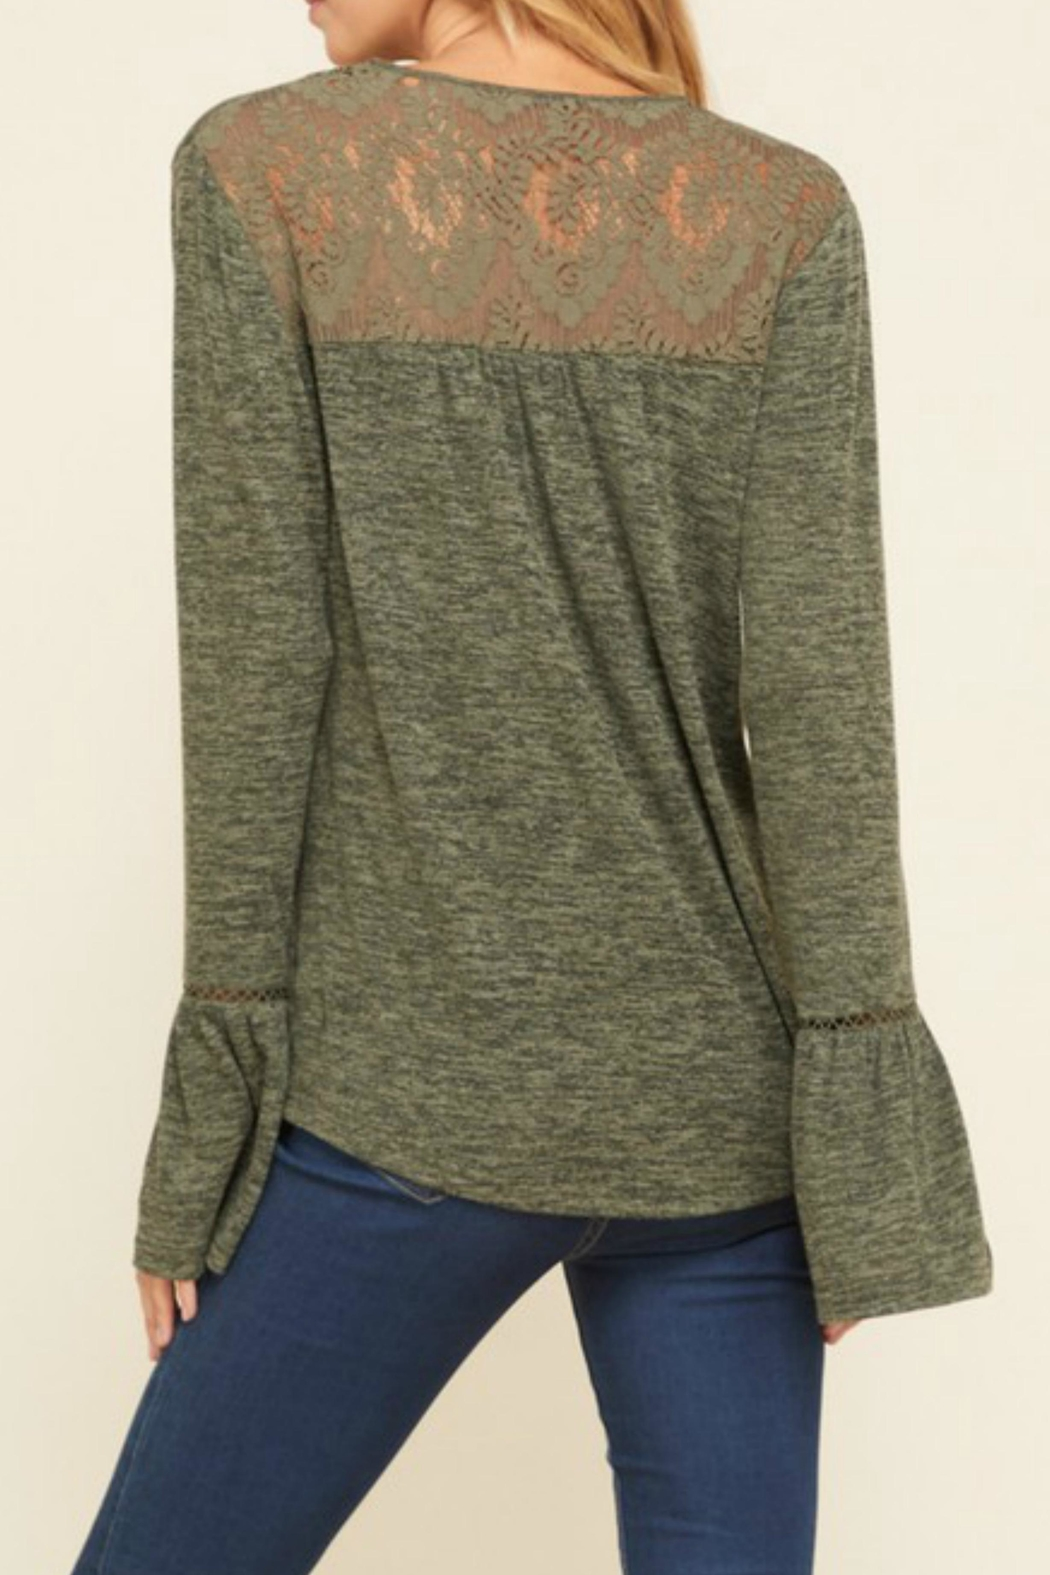 annabelle Embroidered Peasant Sweater - Back Cropped Image